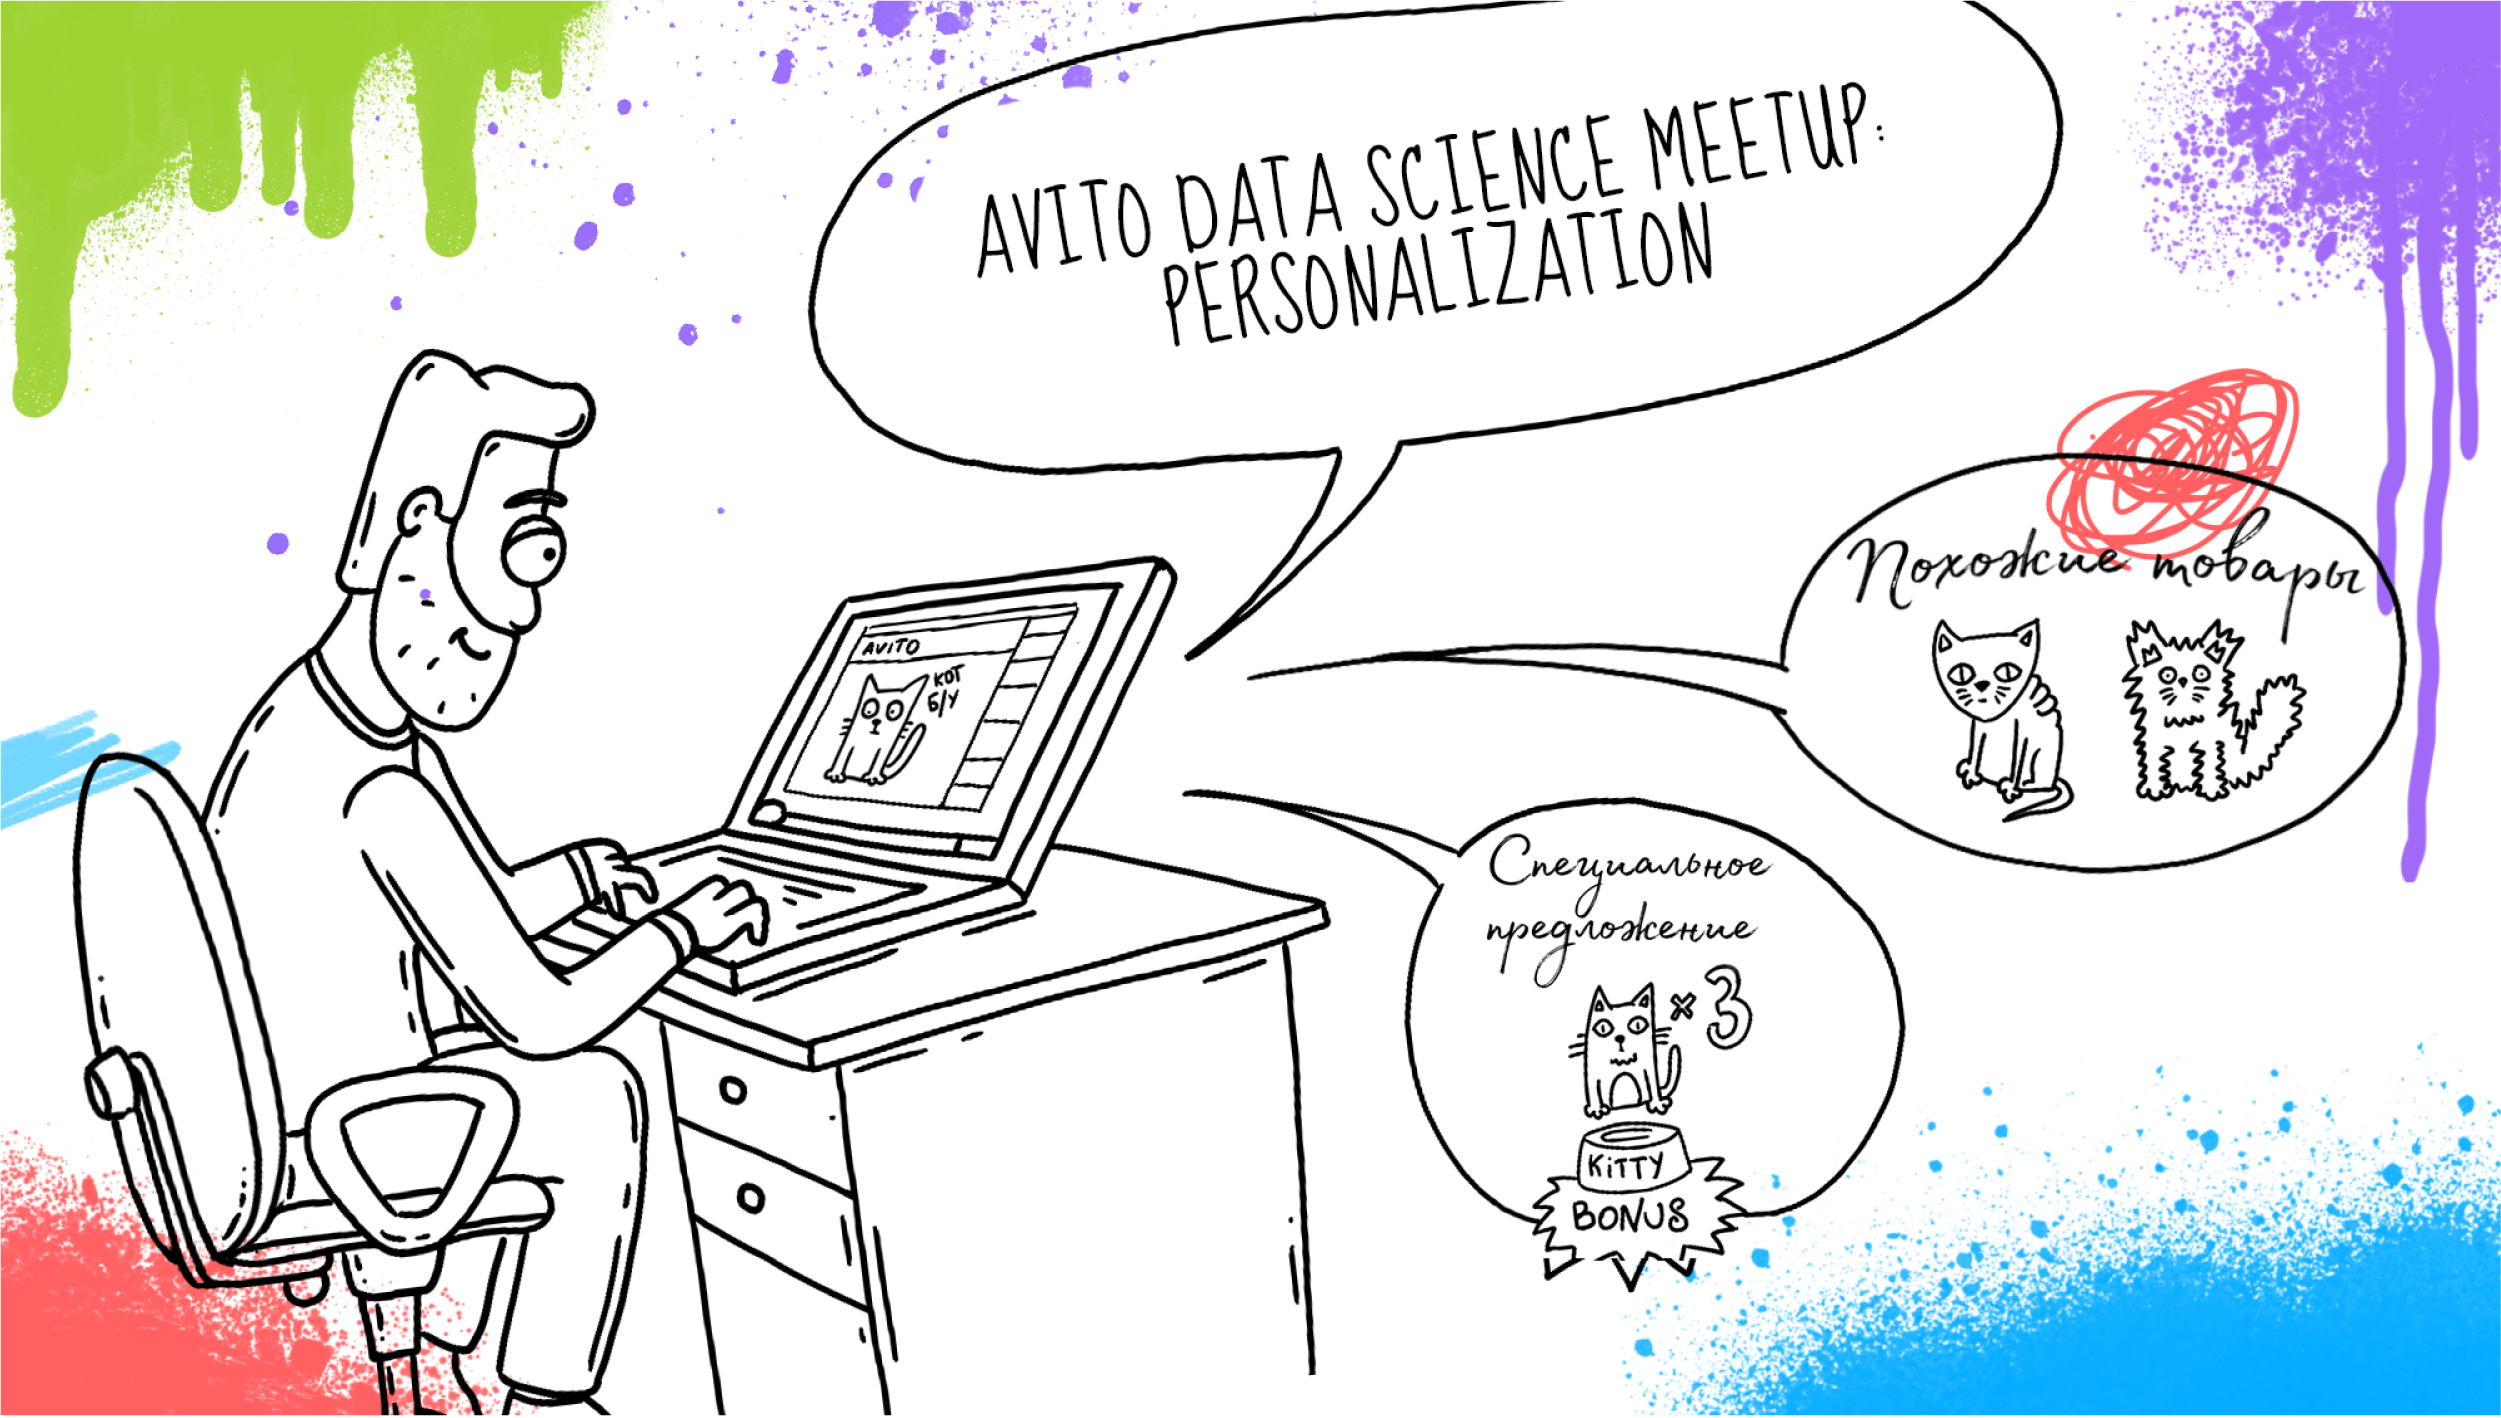 Avito Data Science Meetup: Personalization